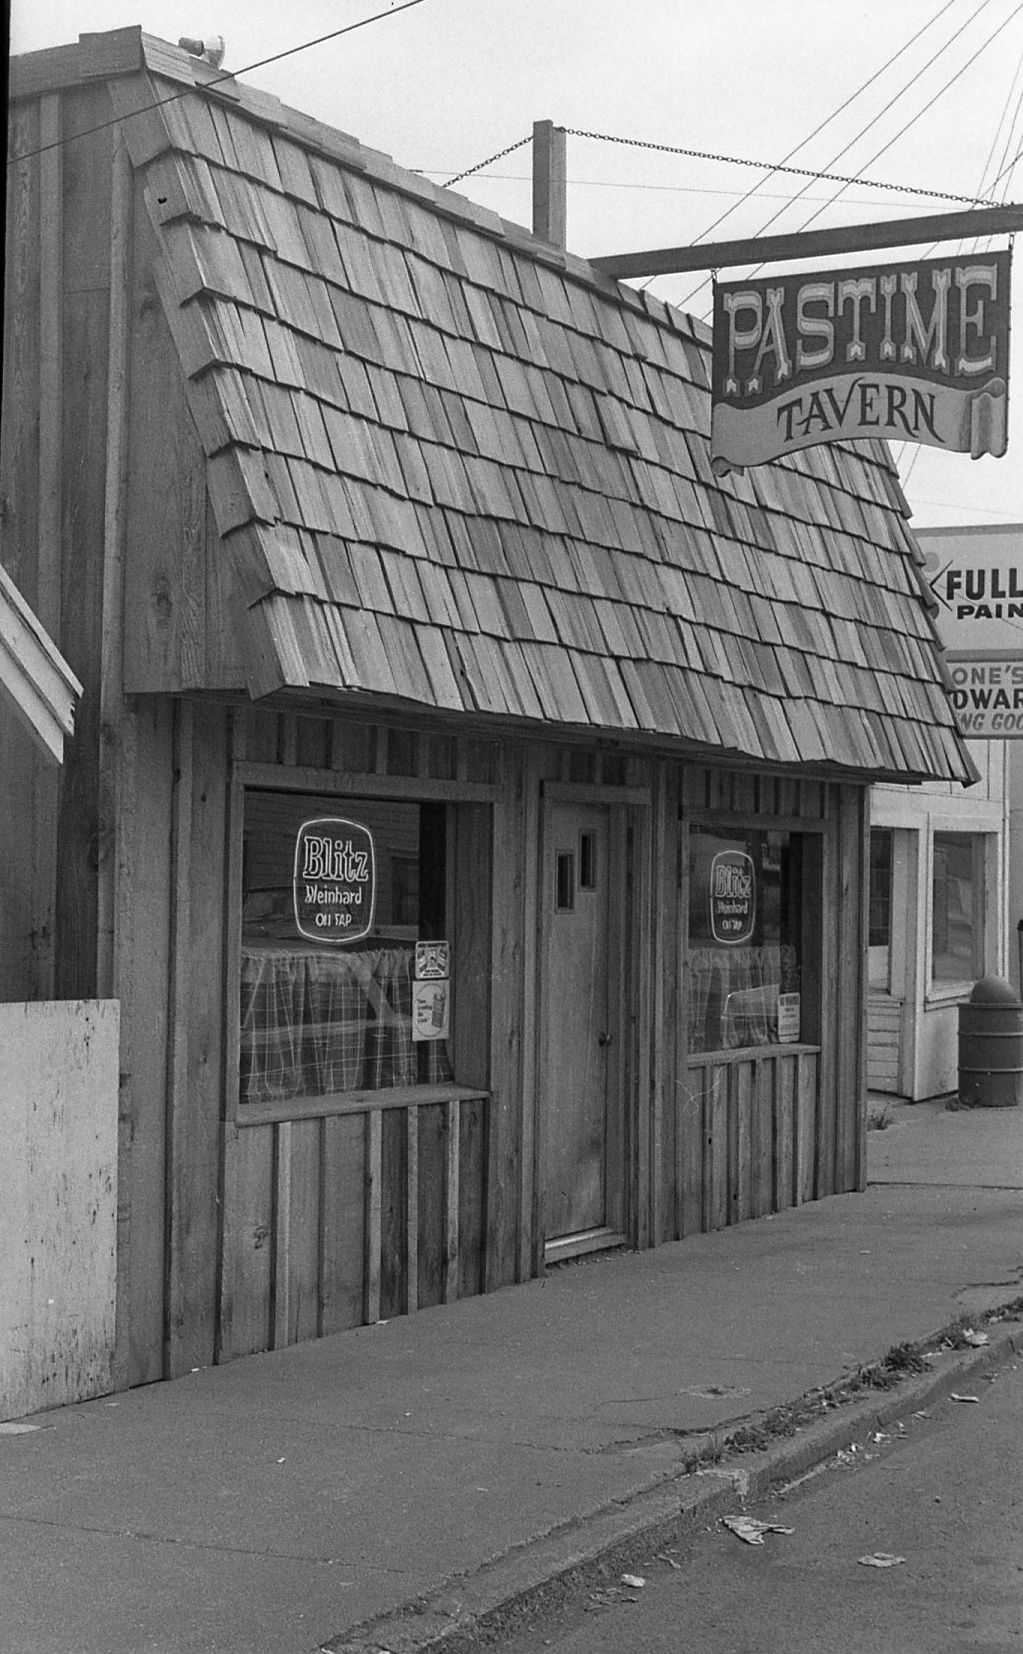 As I See It, Pastime Tavern, 1960s